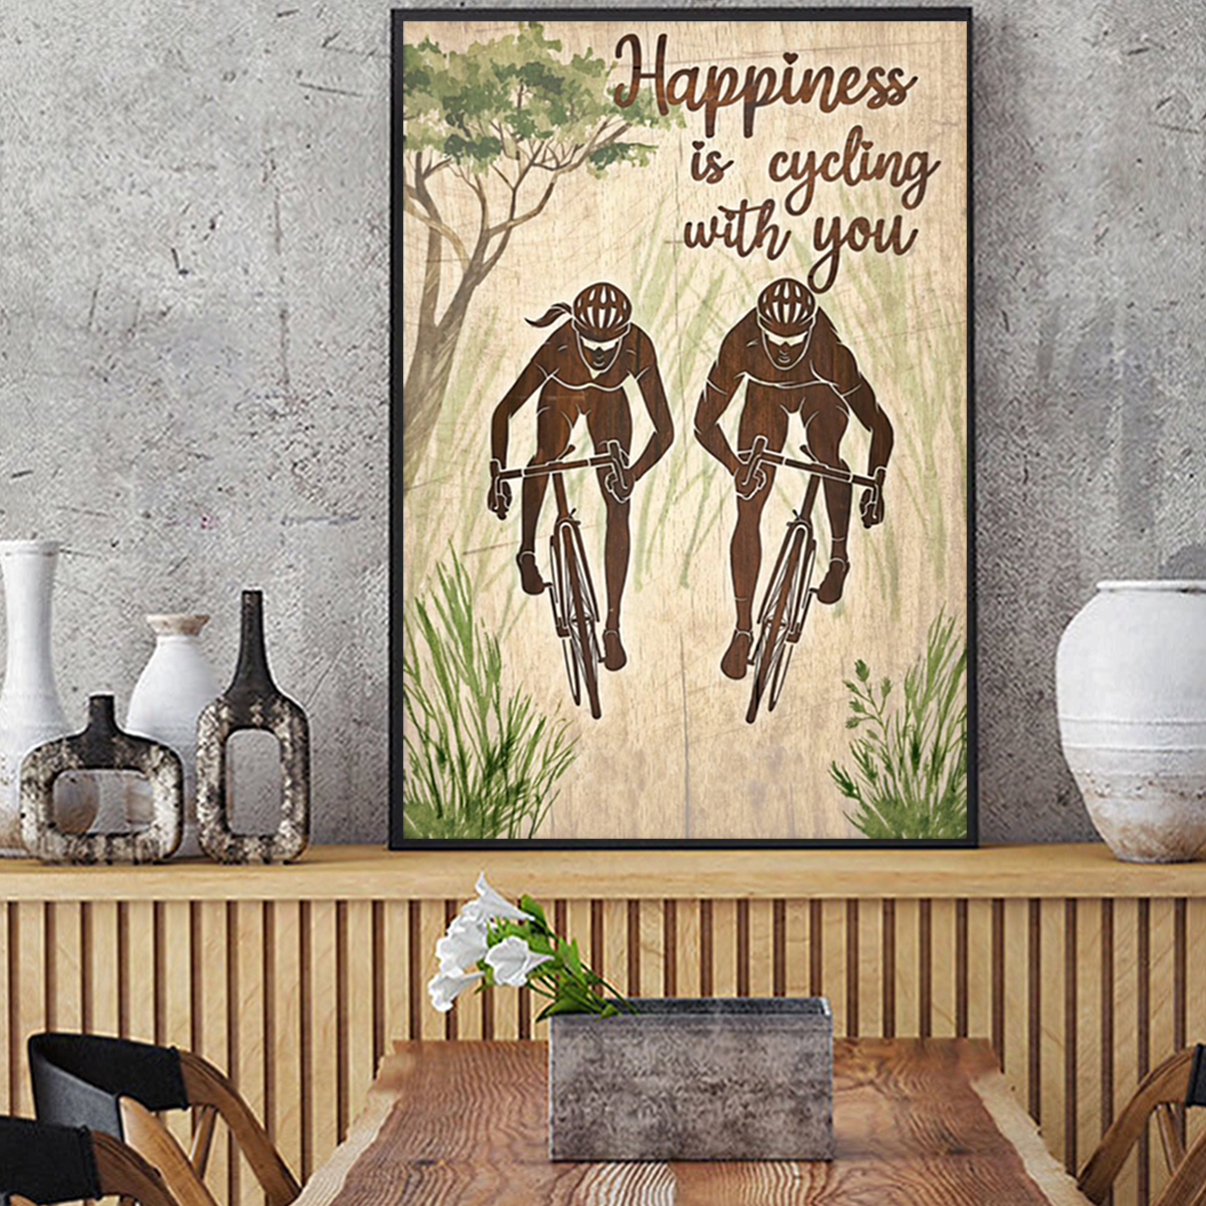 Personalized happiness is cycling with you poster A1